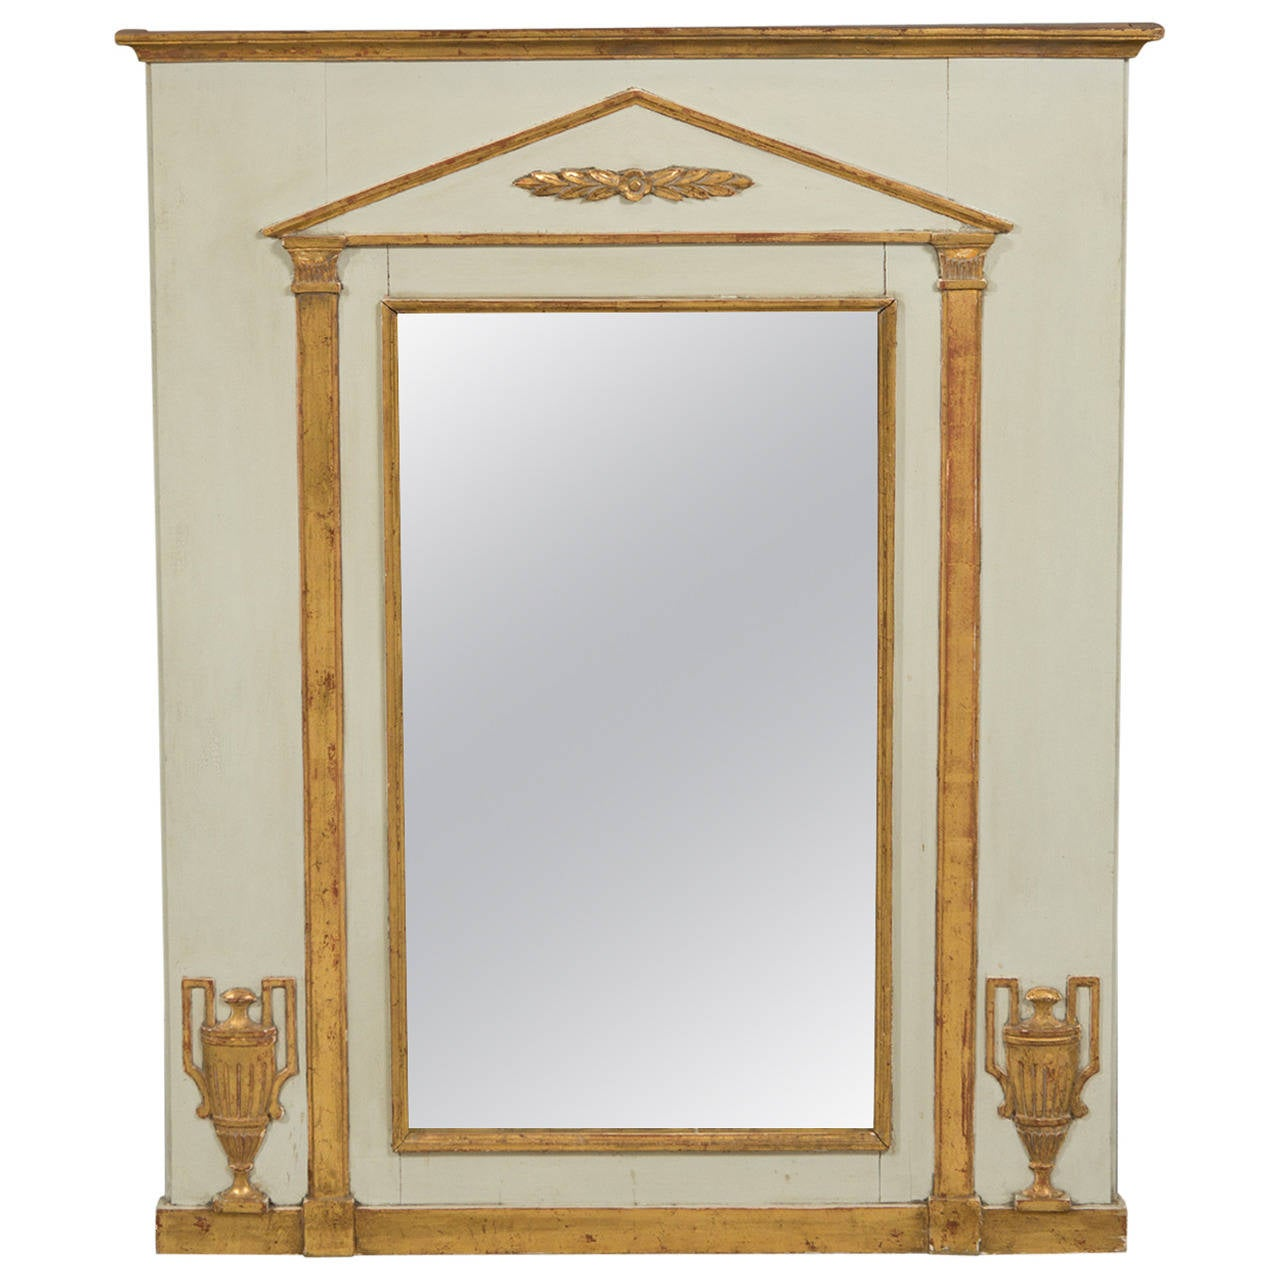 Neoclassical-style trumeau mirror, 1950s, offered by Bardin Palomo